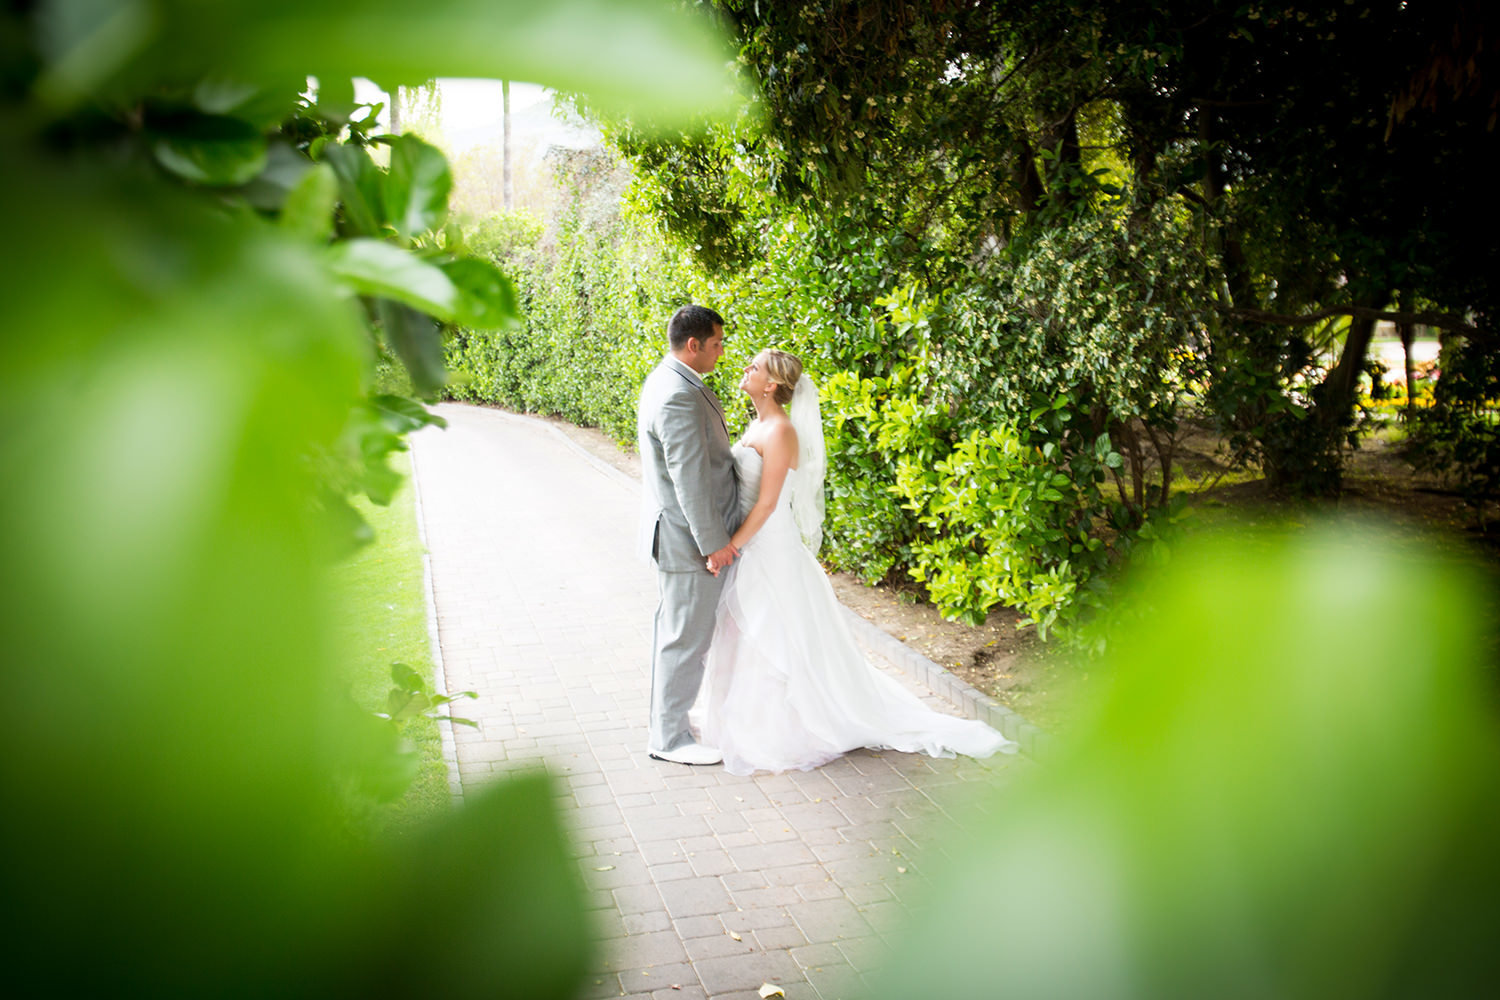 21SycuanResortWeddingPhotography